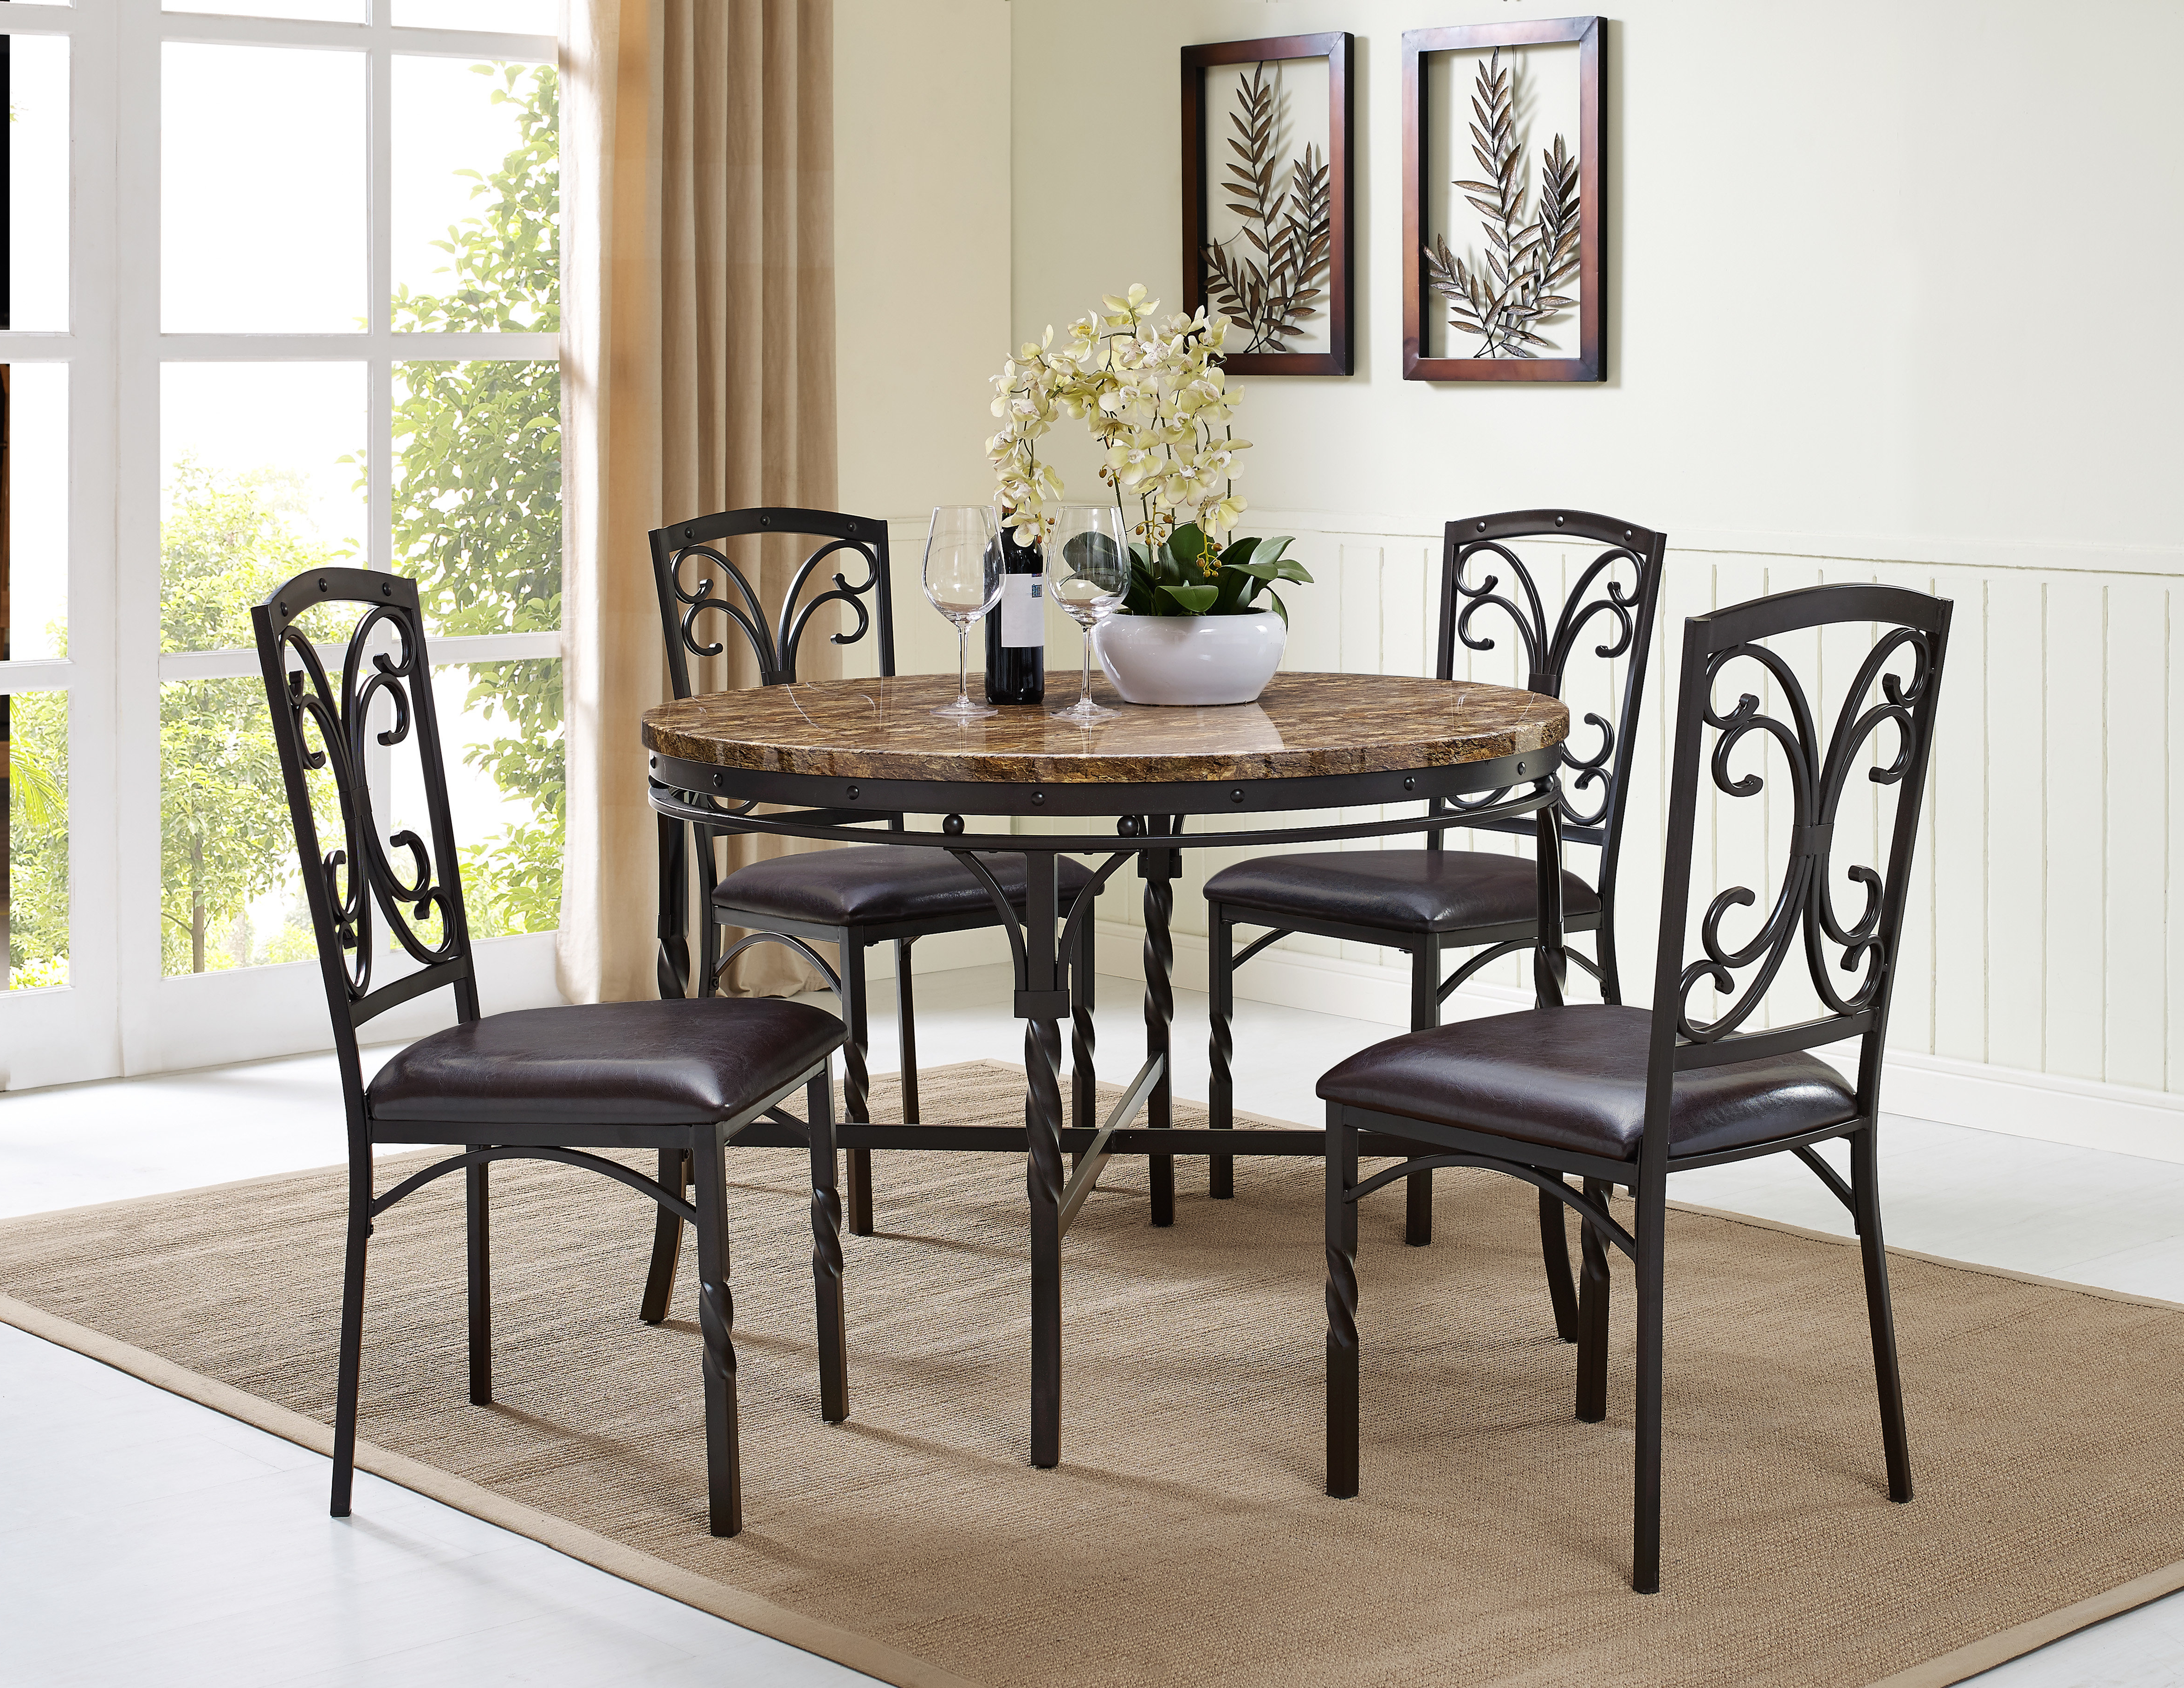 Preferred Vaughan 5 Piece Dining Table Set Pertaining To Queener 5 Piece Dining Sets (View 3 of 20)